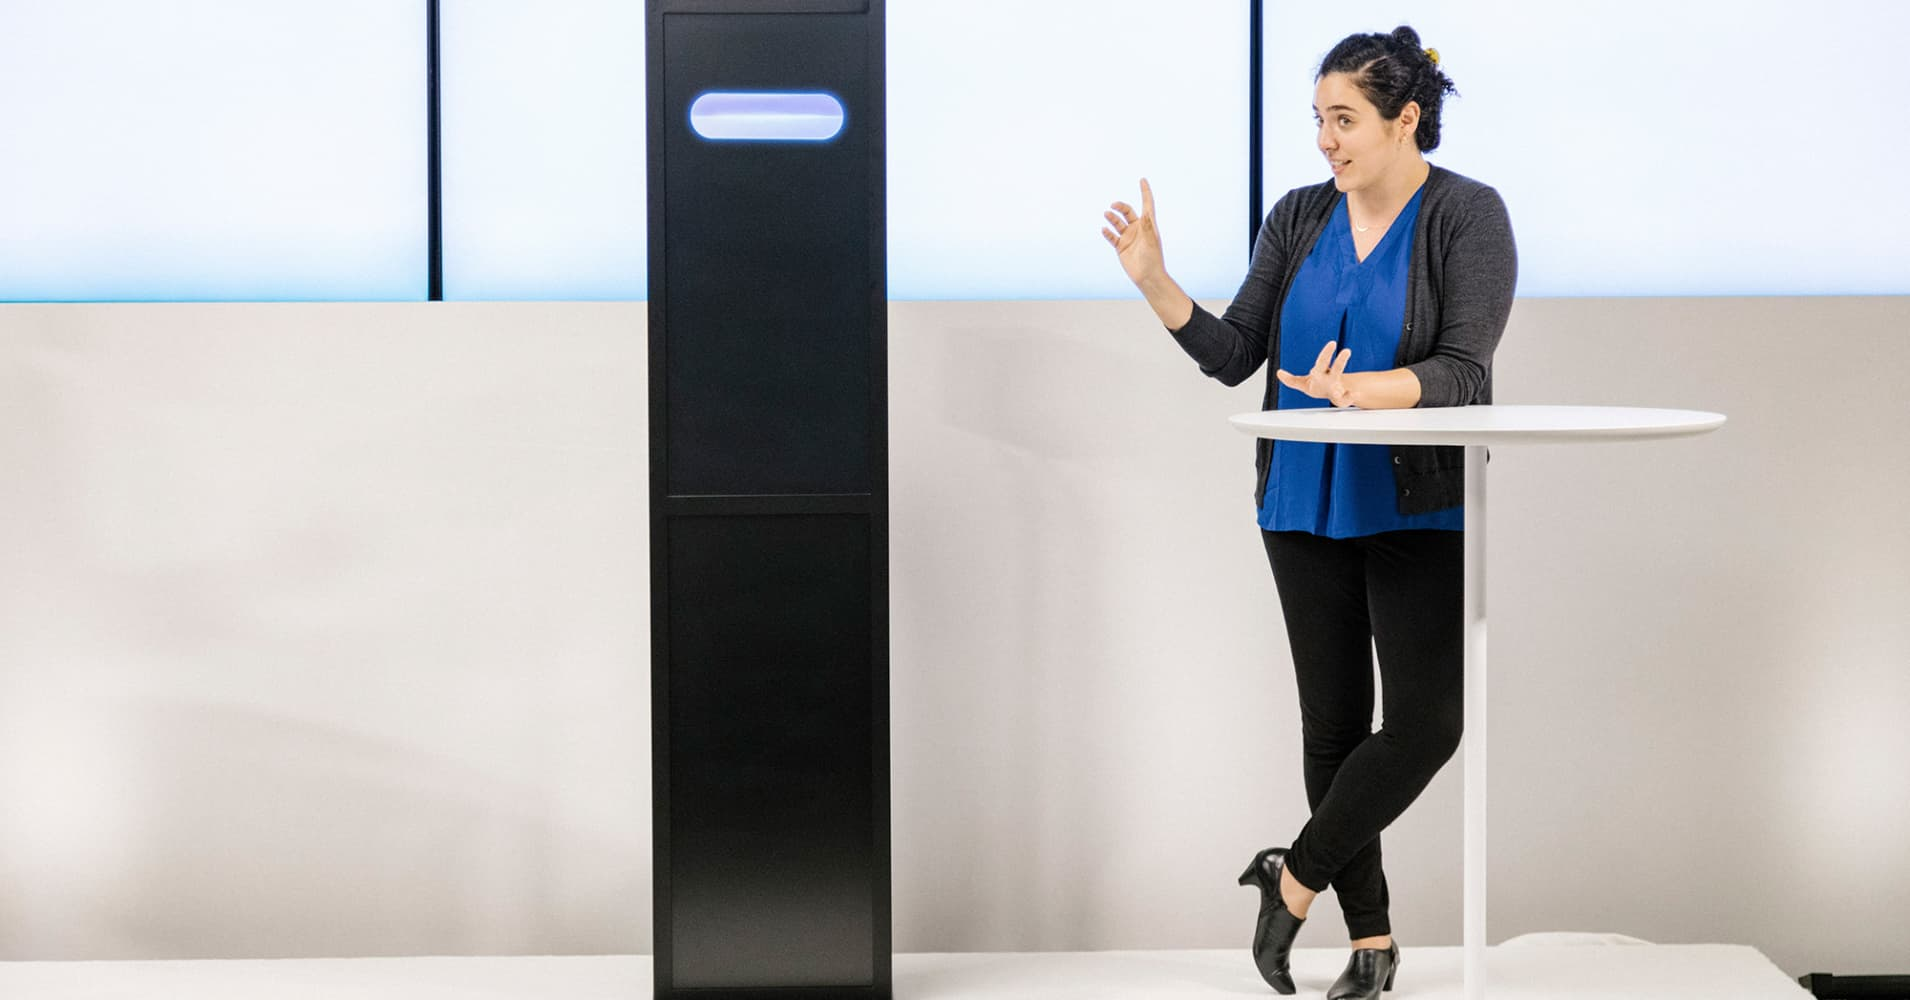 Siri and Alexa have some competition — this IBM computer can 'debate' with humans